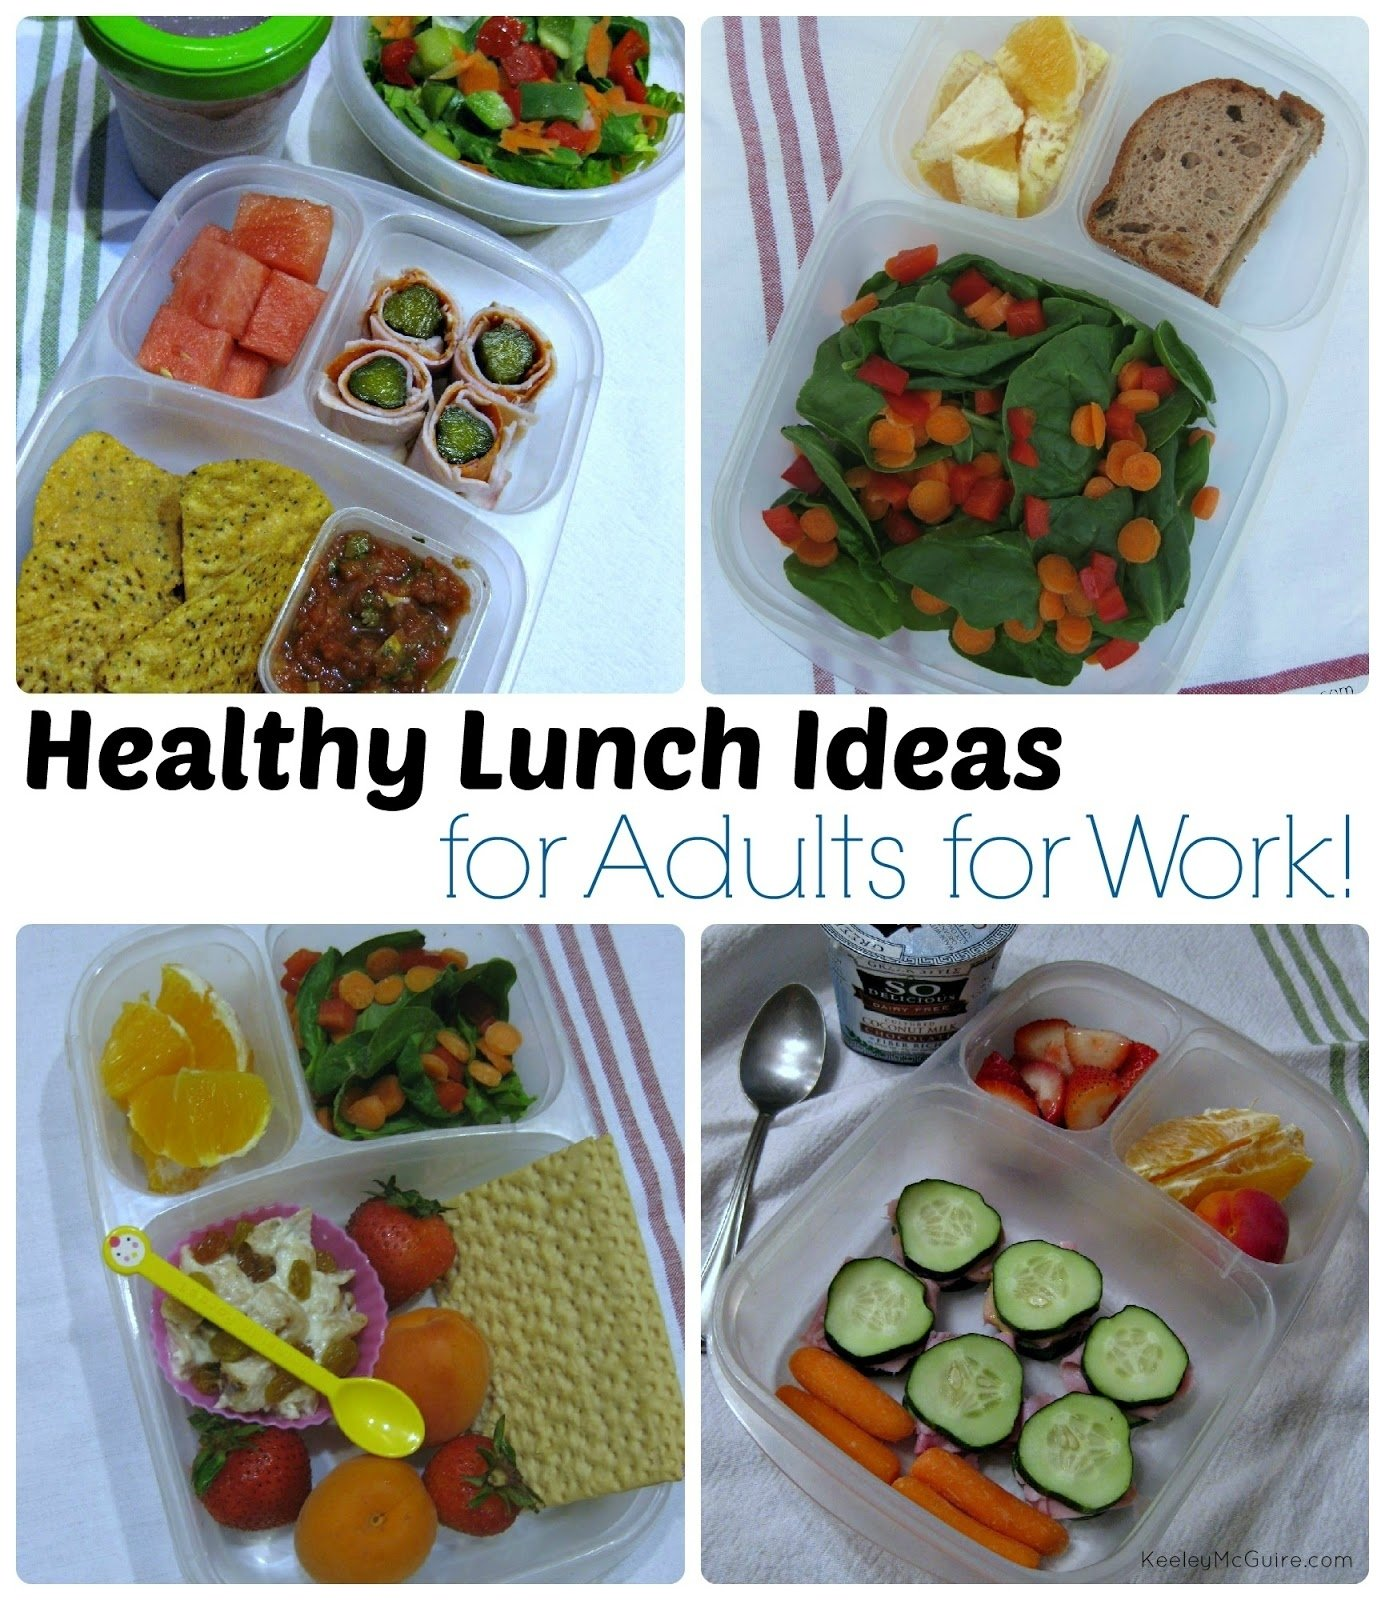 10 Perfect Quick And Easy Lunch Ideas For Work gluten free allergy friendly lunch made easy healthy adult work 2 2020